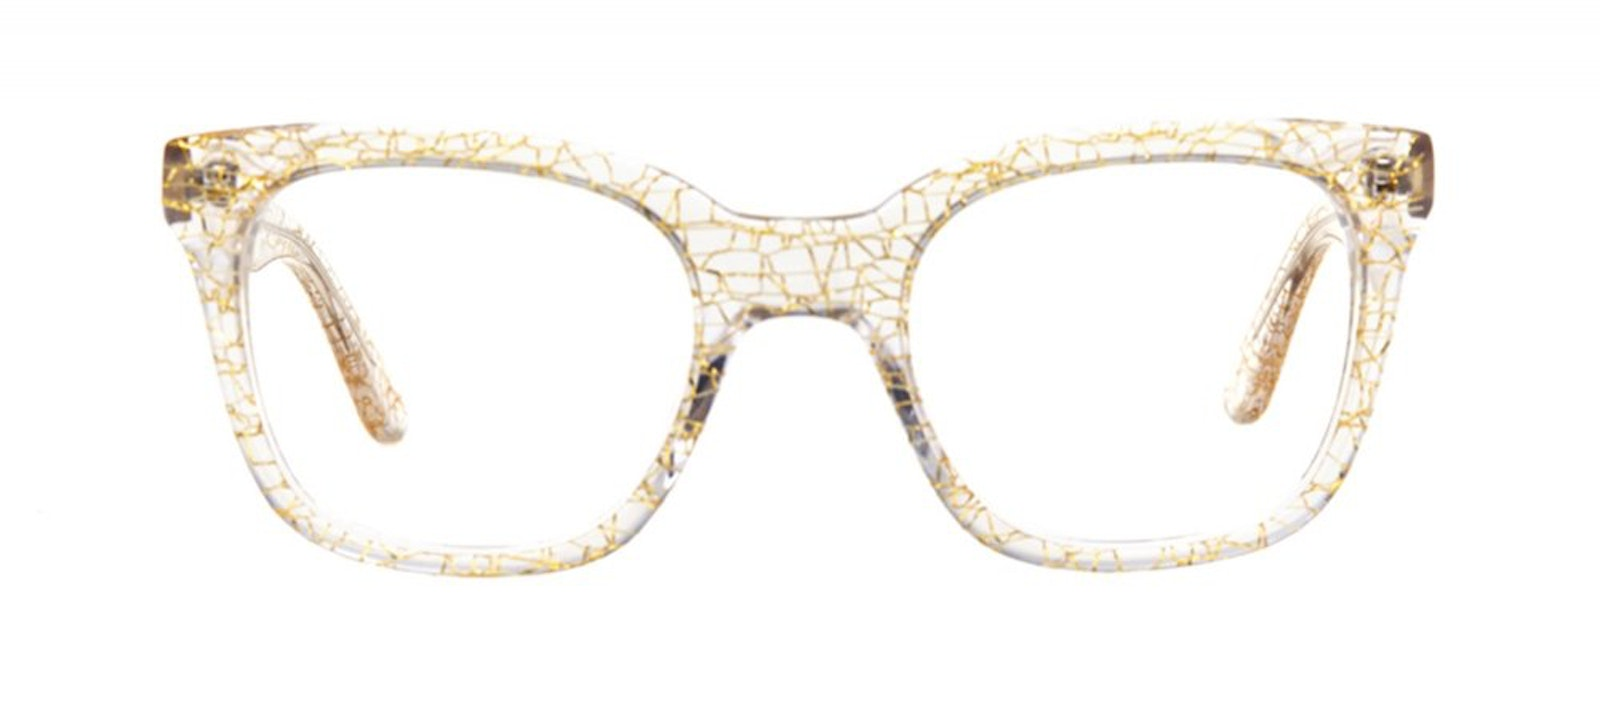 732faa8aed430 Women s Eyeglasses - Jack   Norma in Champagne